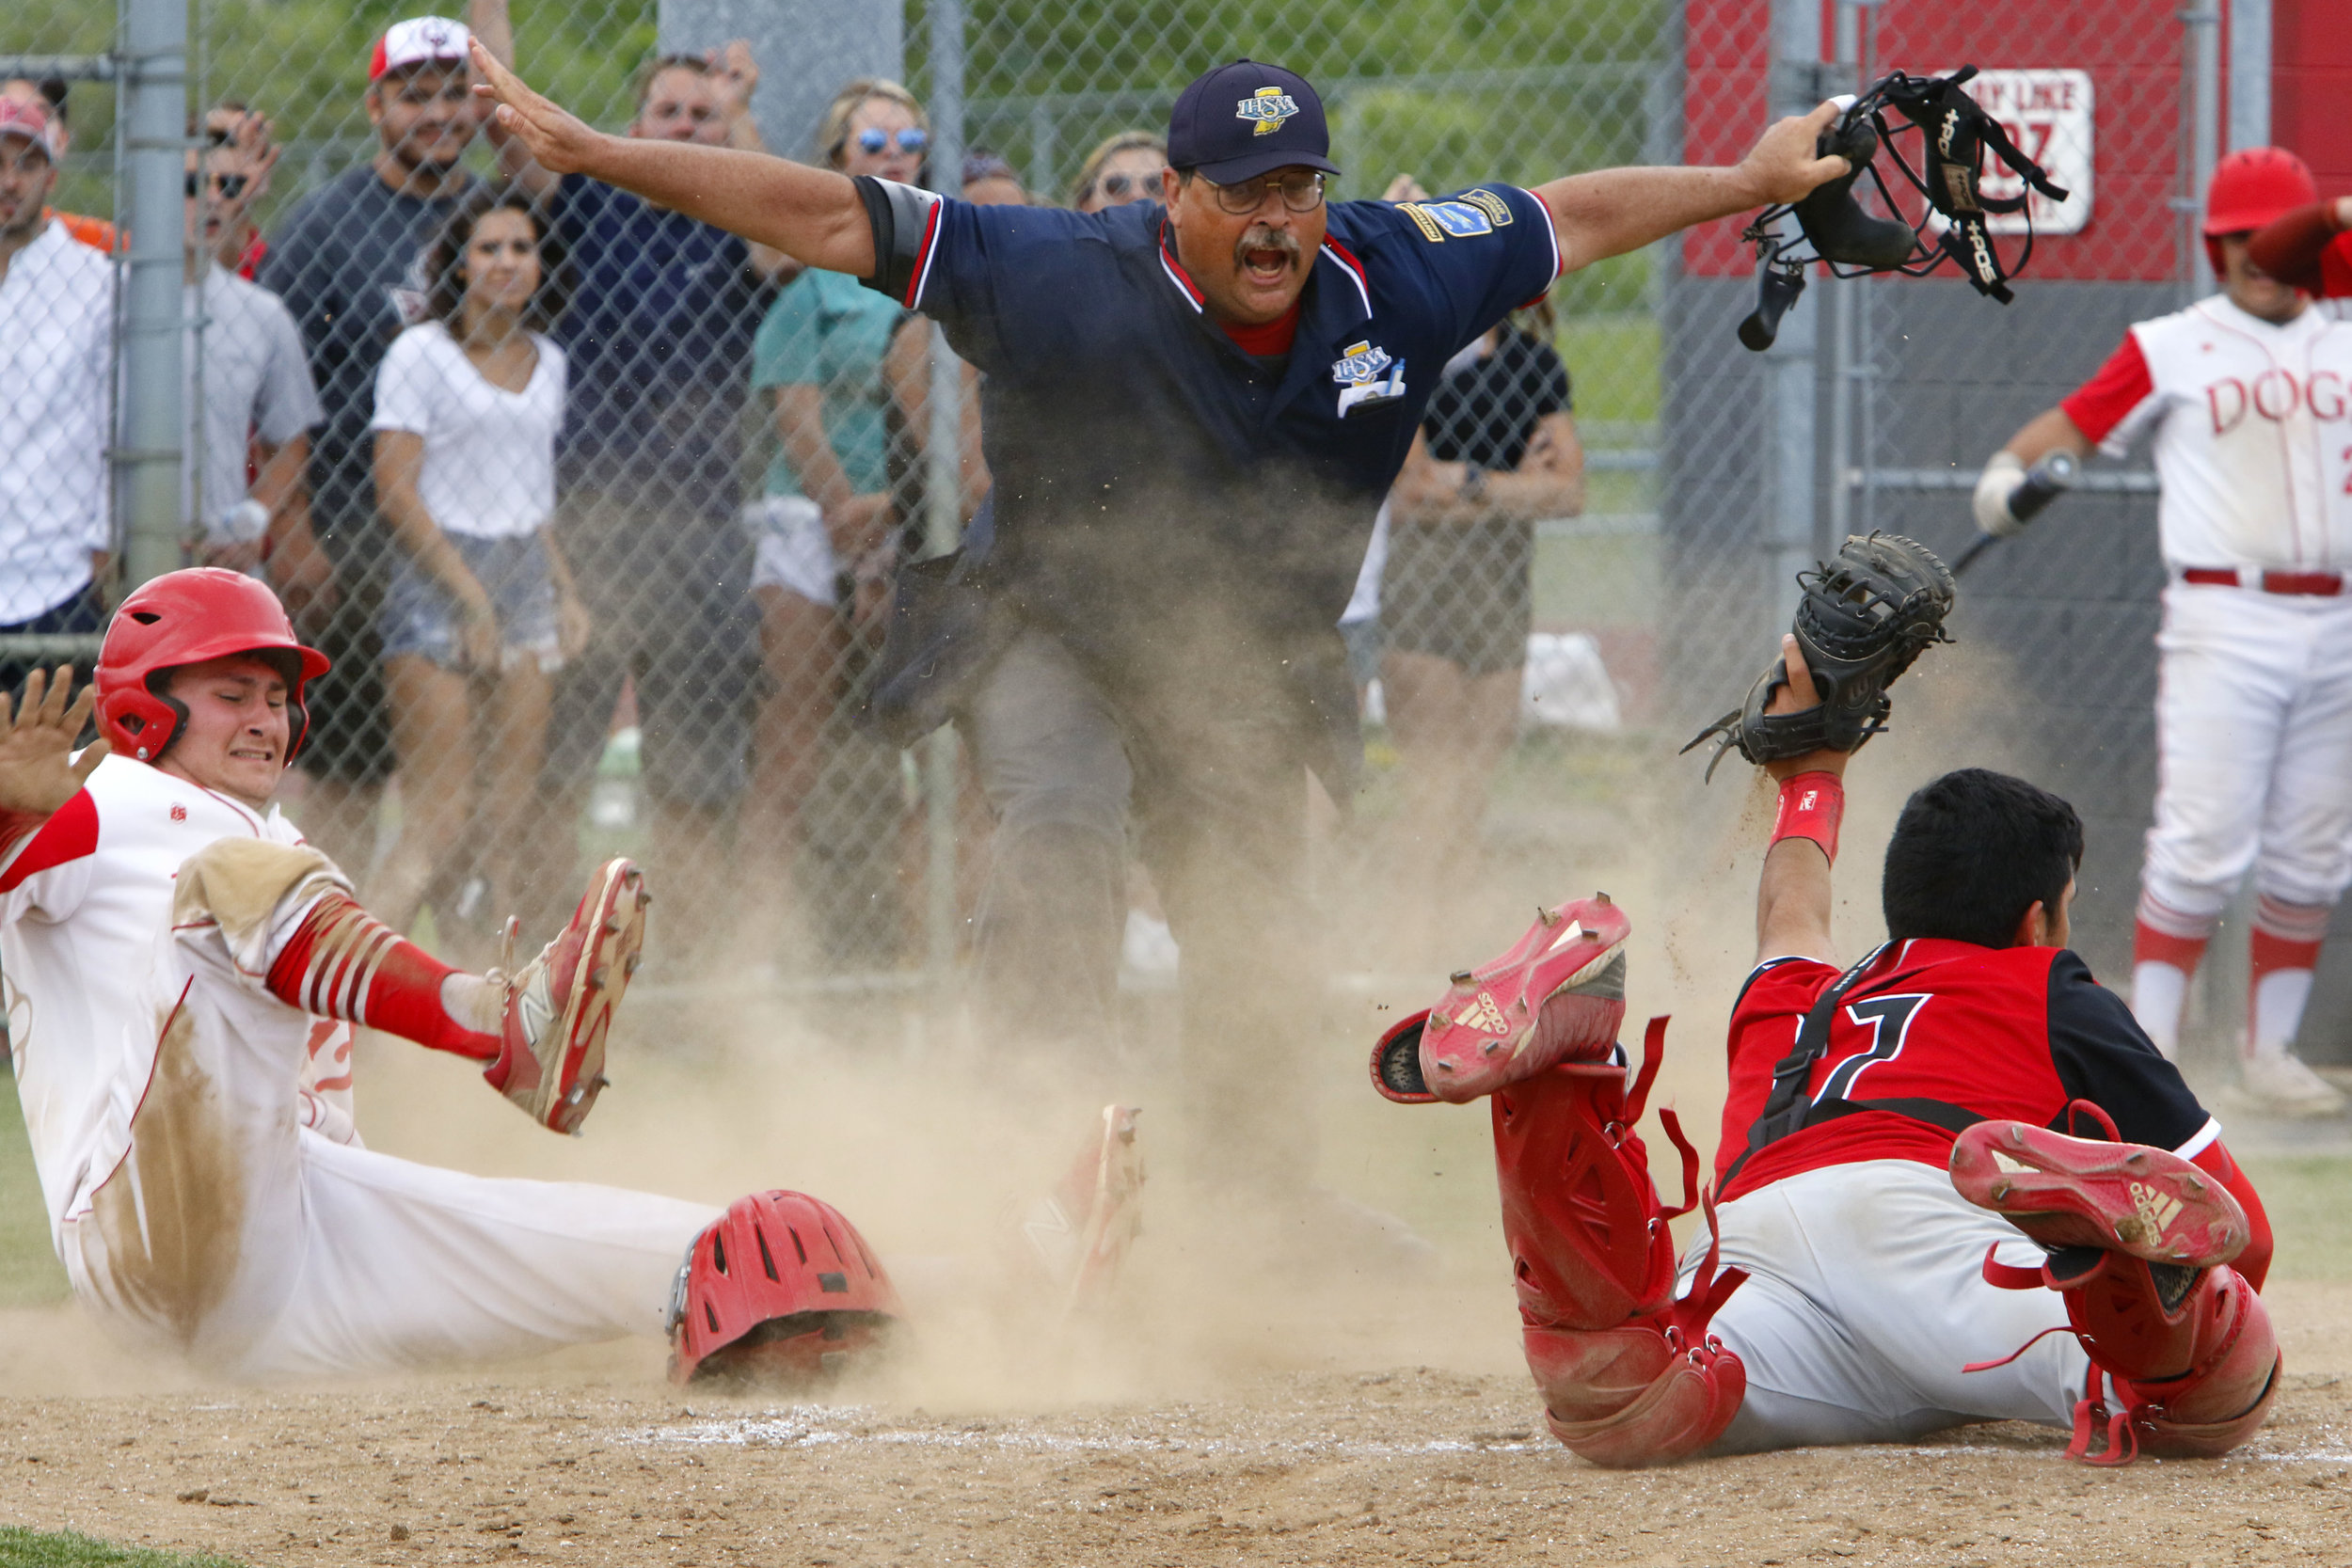 The umpire calls Crown Point's Drew Horton, left, safe at home plate after Portage's Xavier Alvarez tried to get the out against the Bulldogs during a 4A sectional title game in Crown Point.